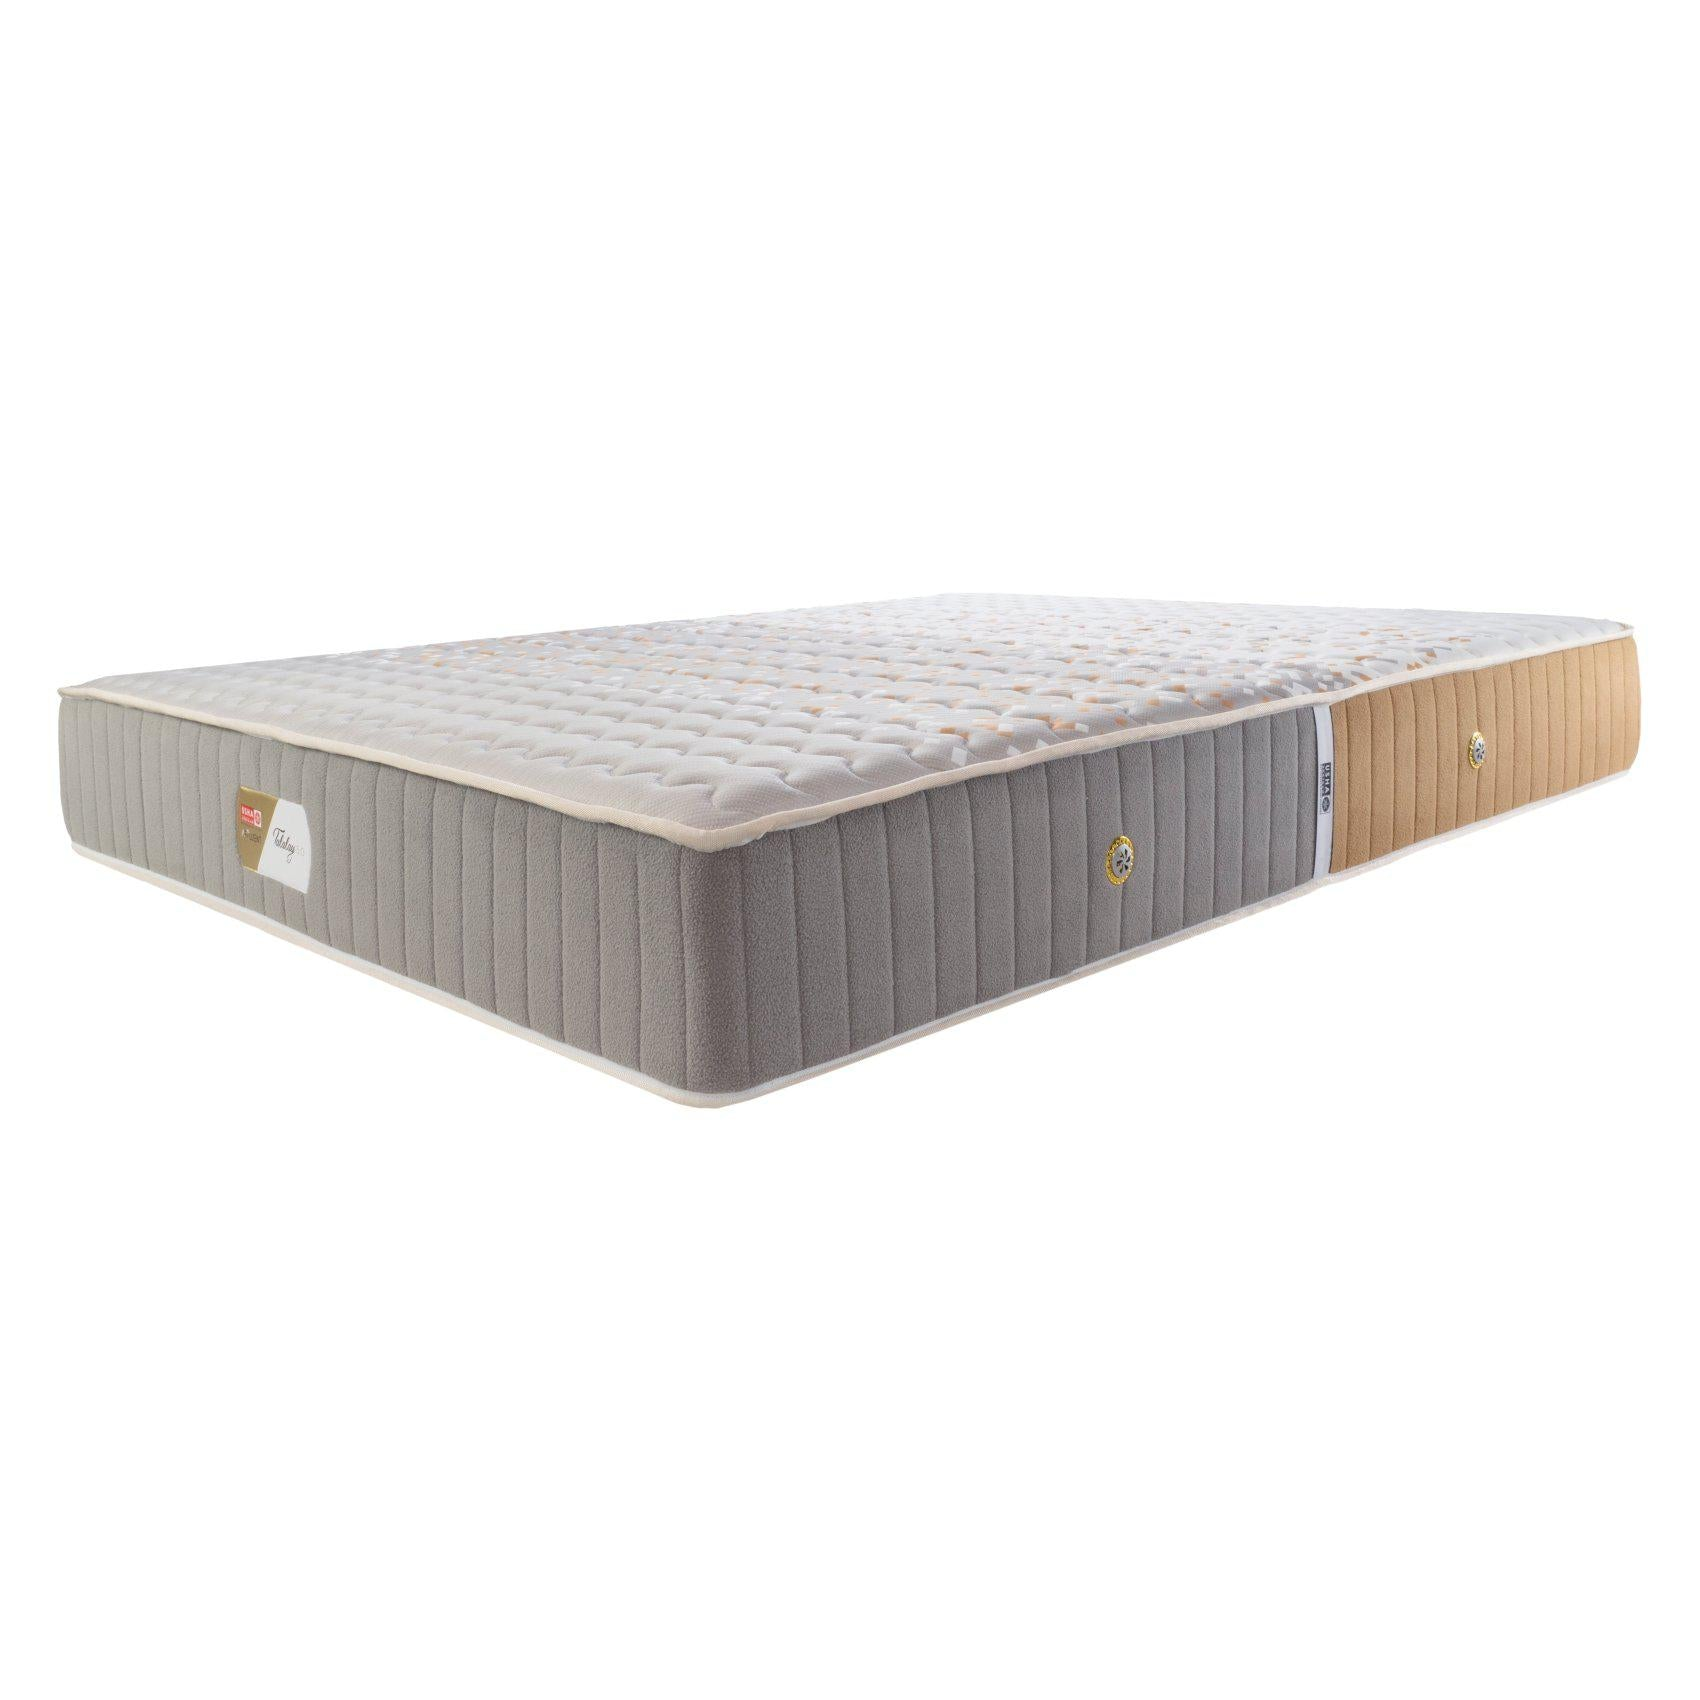 Pincore Latex Mattress